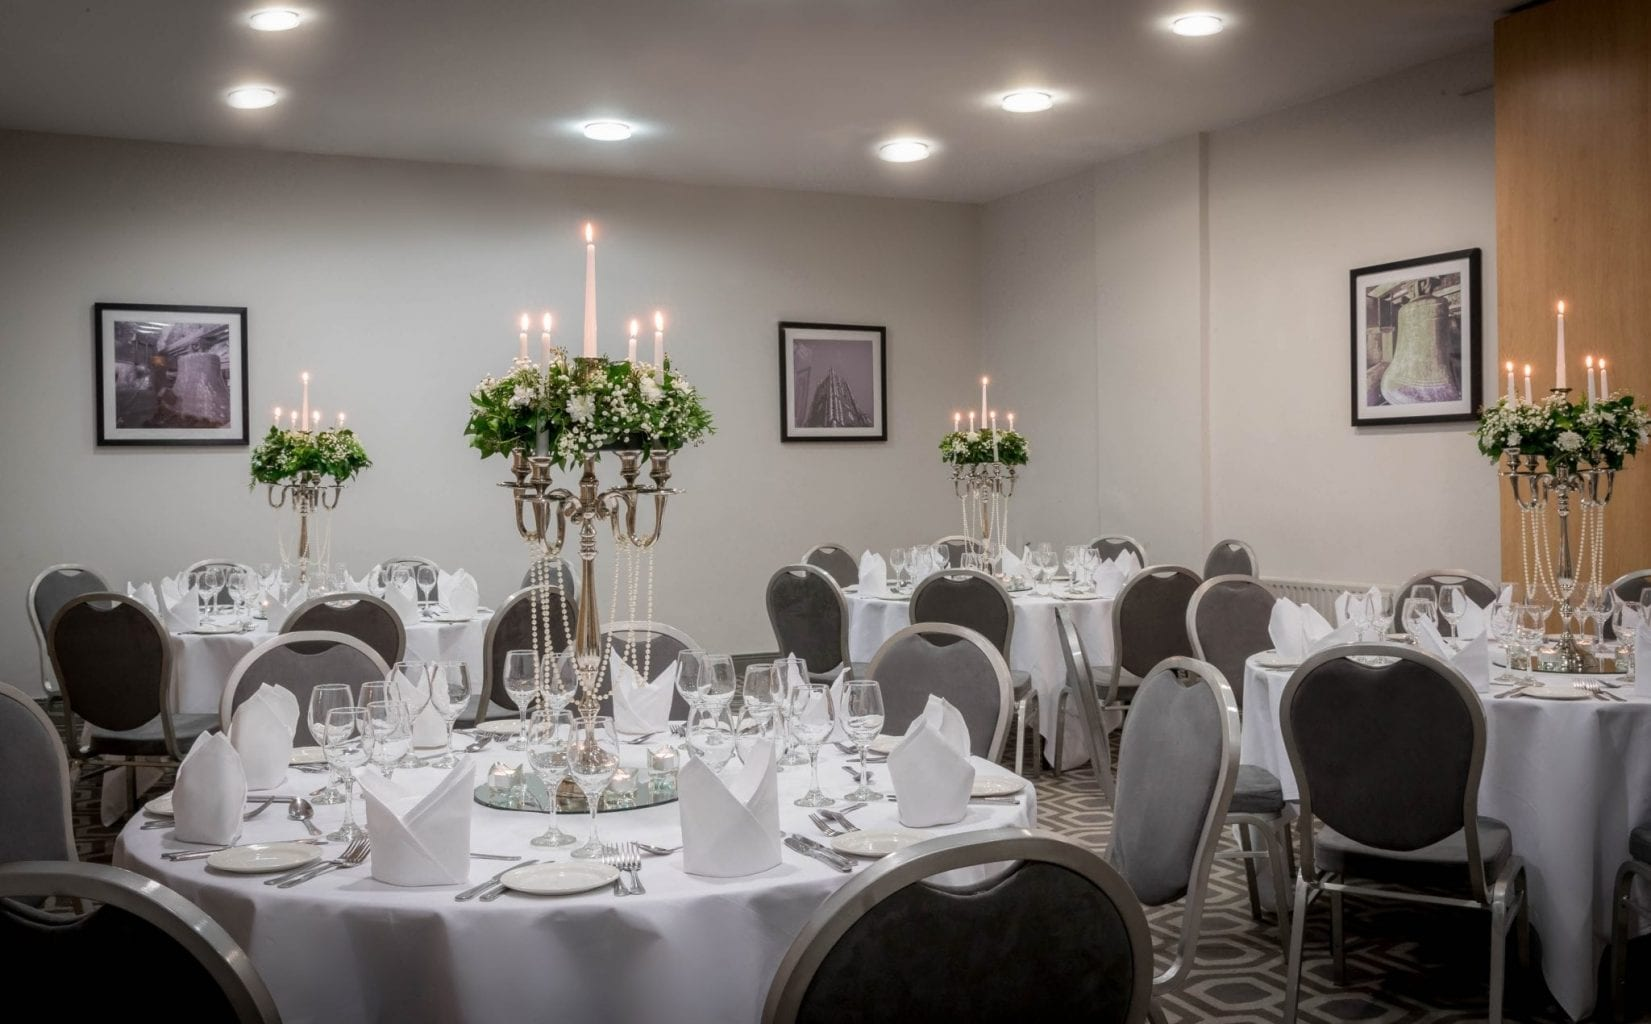 Weddings and gala dinners at Maldron Hotel Cork